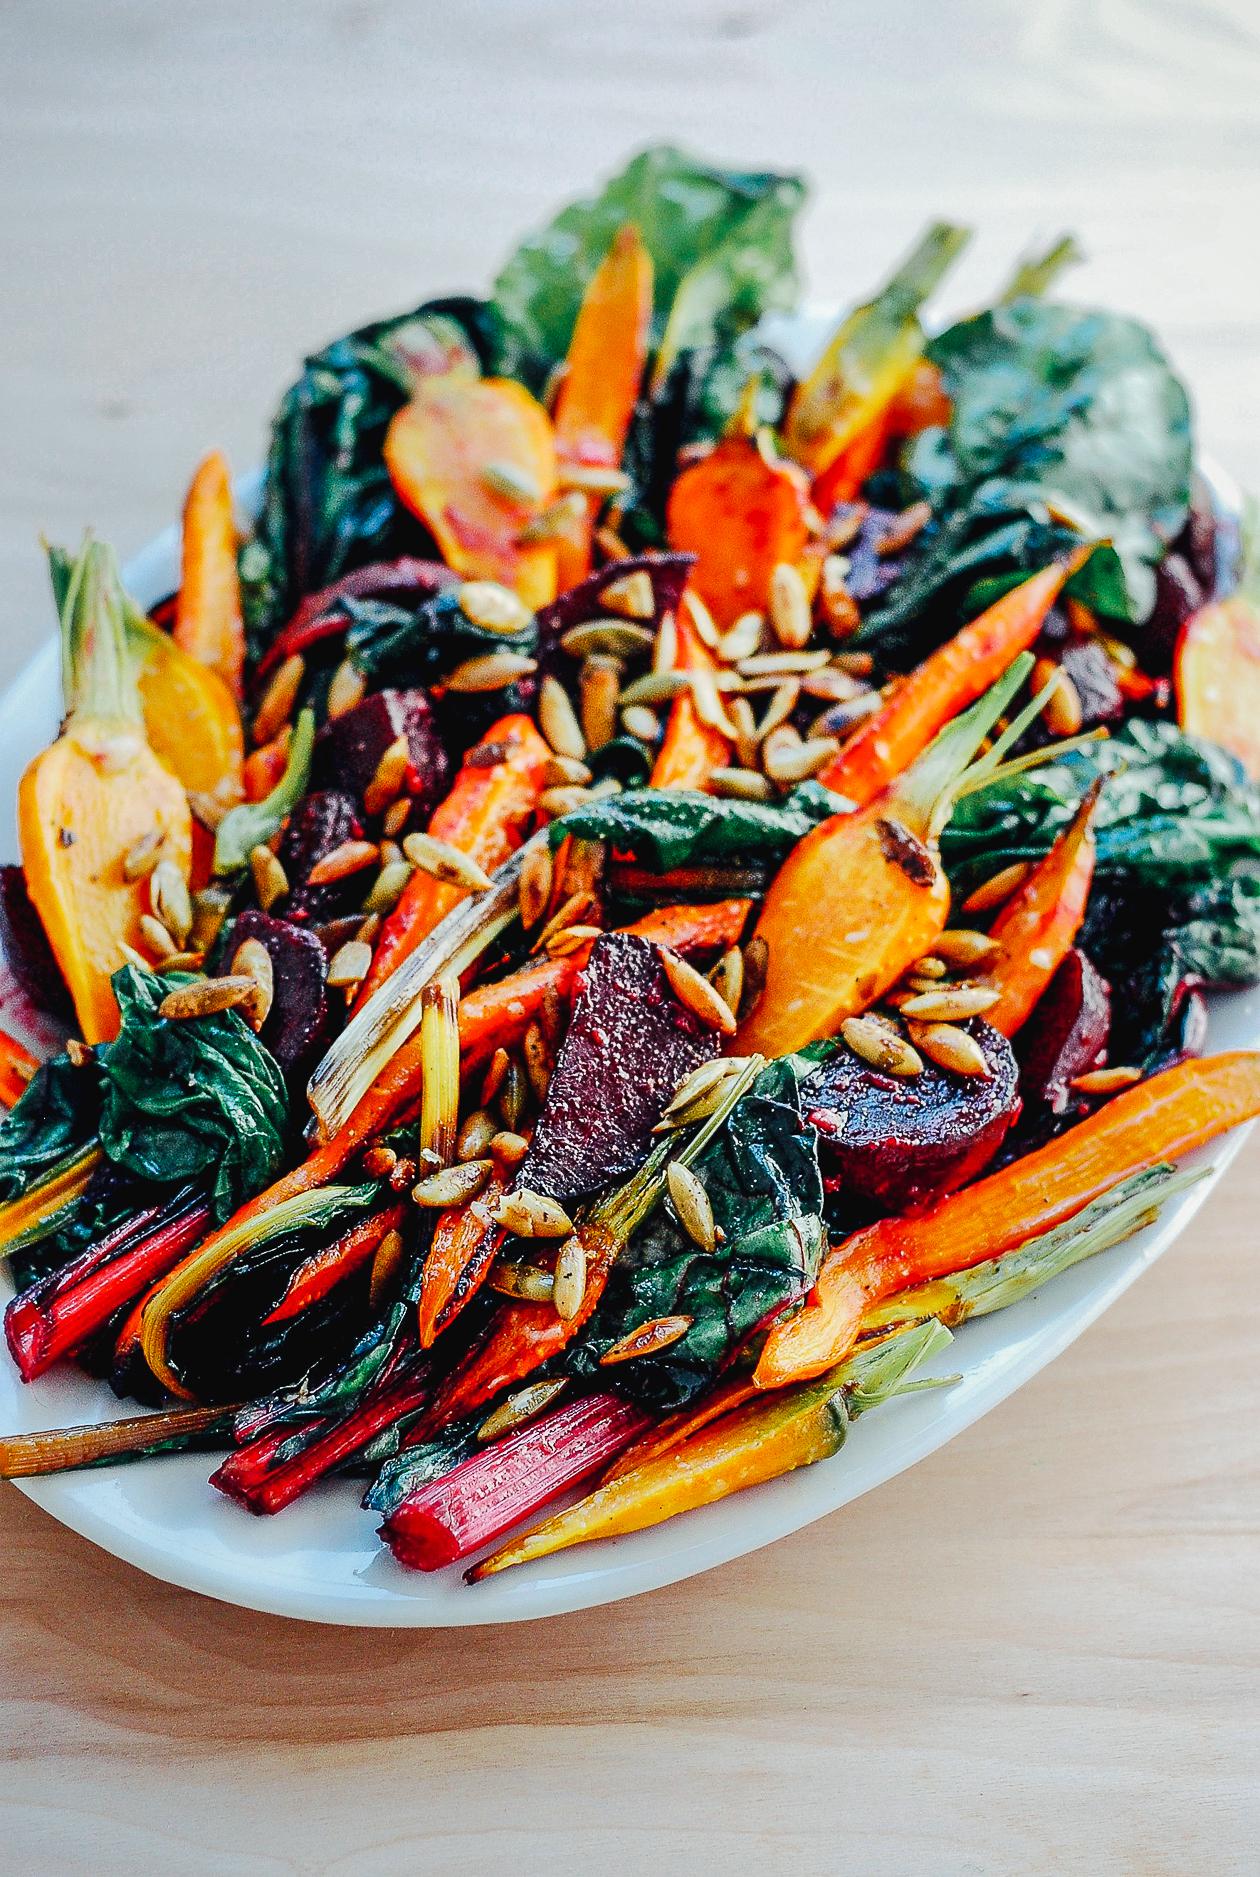 Roasted Vegetable Salad With Garlic Dressing